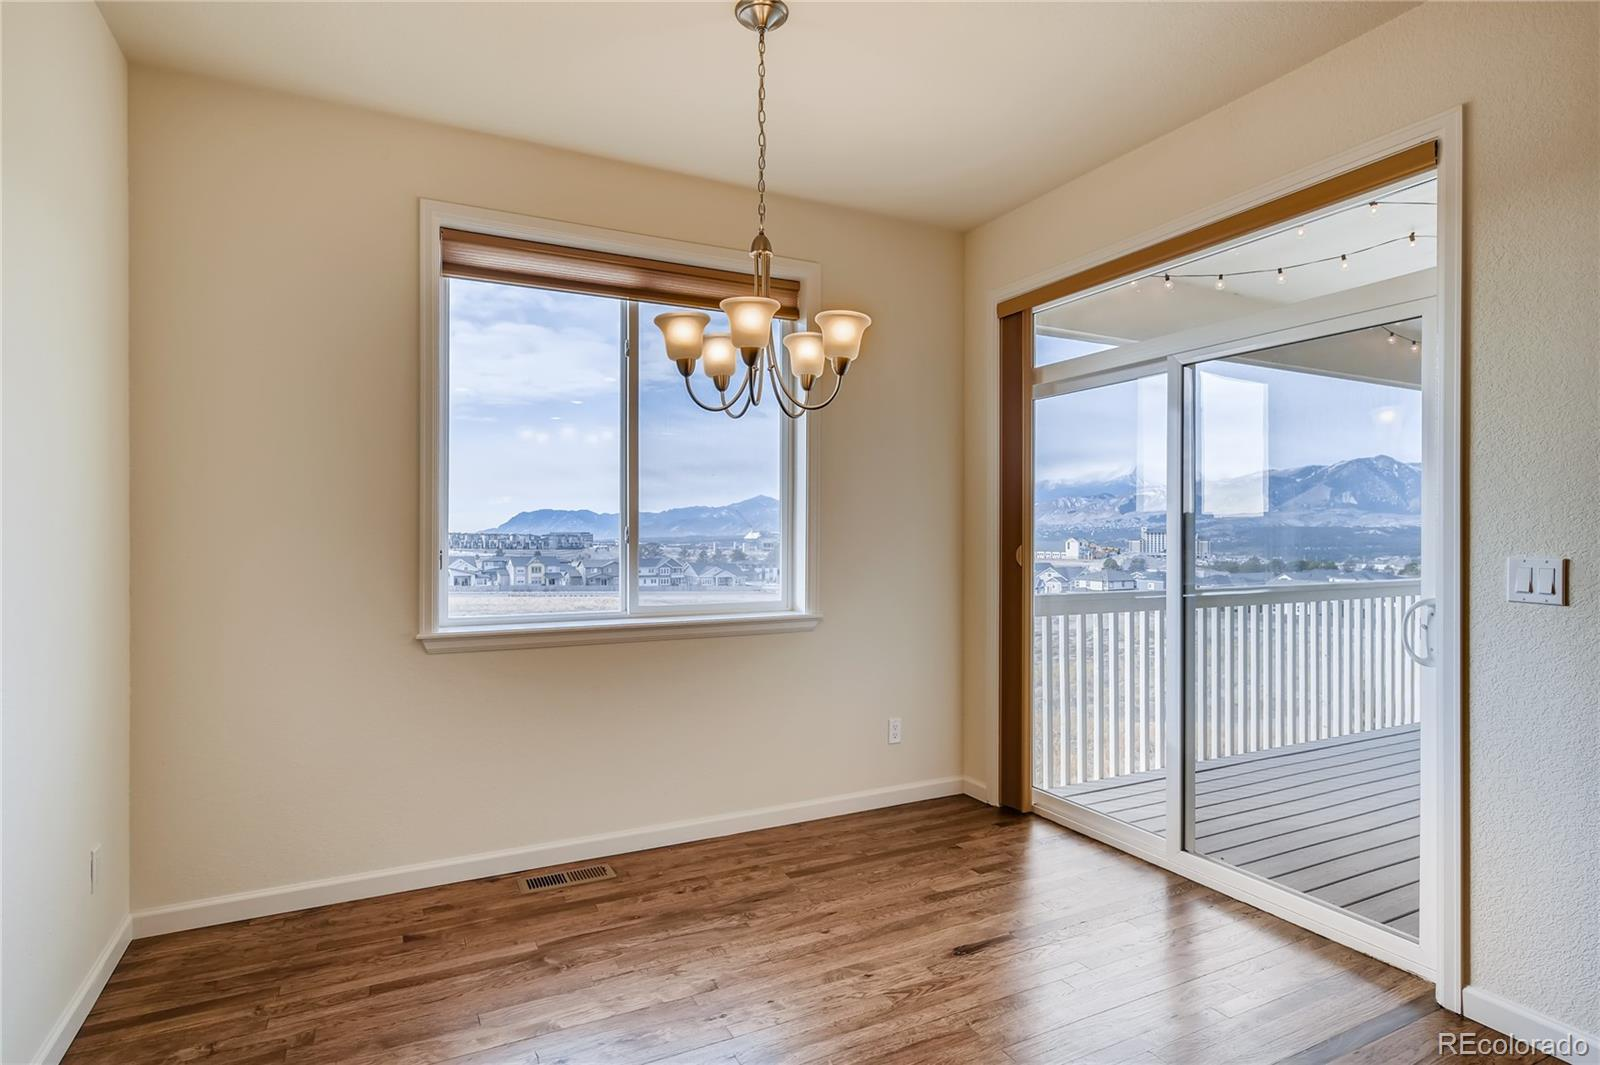 MLS# 5348867 - 14 - 1514 Promontory Bluff View, Colorado Springs, CO 80921